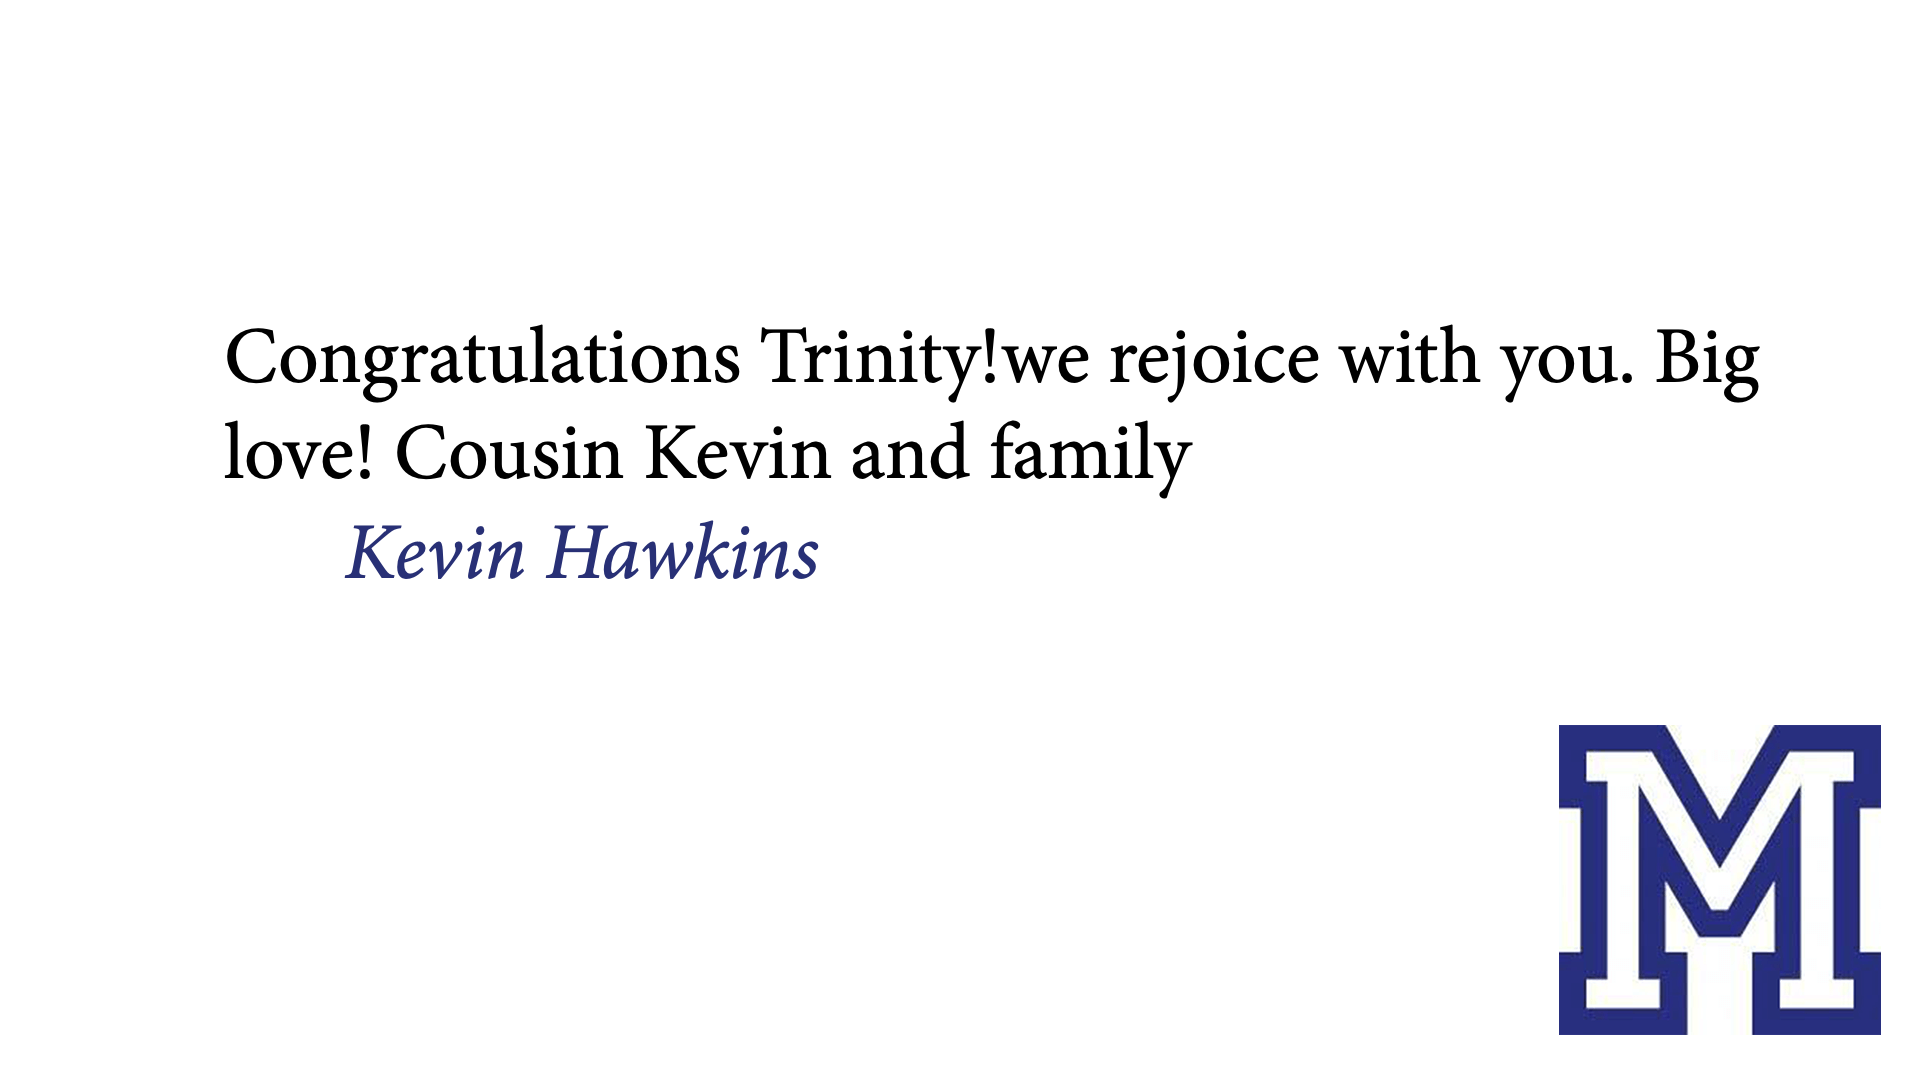 tbi_trinity-thompson_921.png